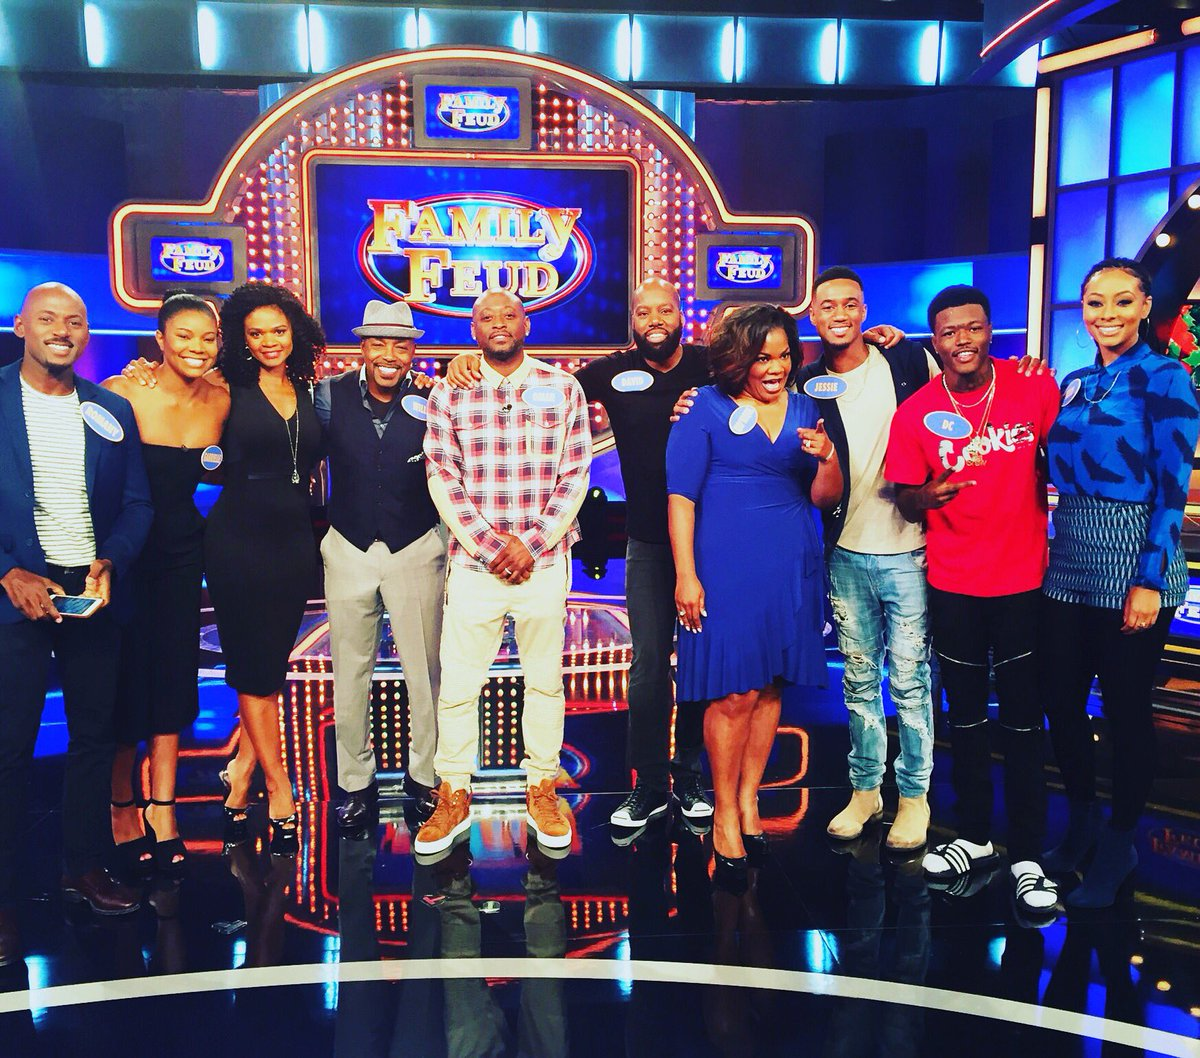 Cast From Almost Christmas.Will Packer On Twitter Shot Familyfeud Today With